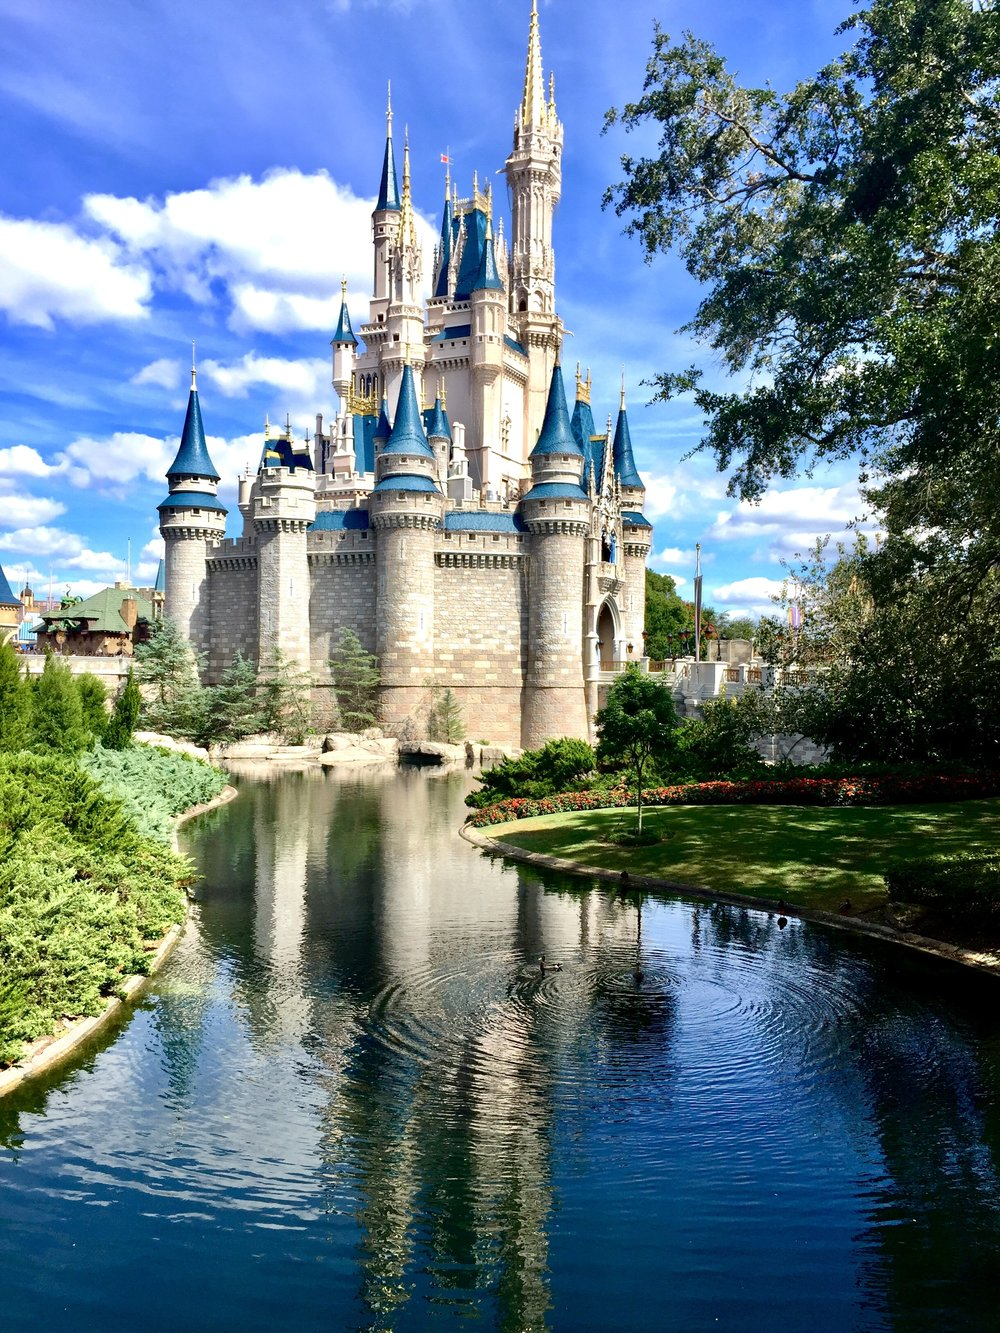 Cinderella's Castle at Disney's Magic Kingdom Park in Florida